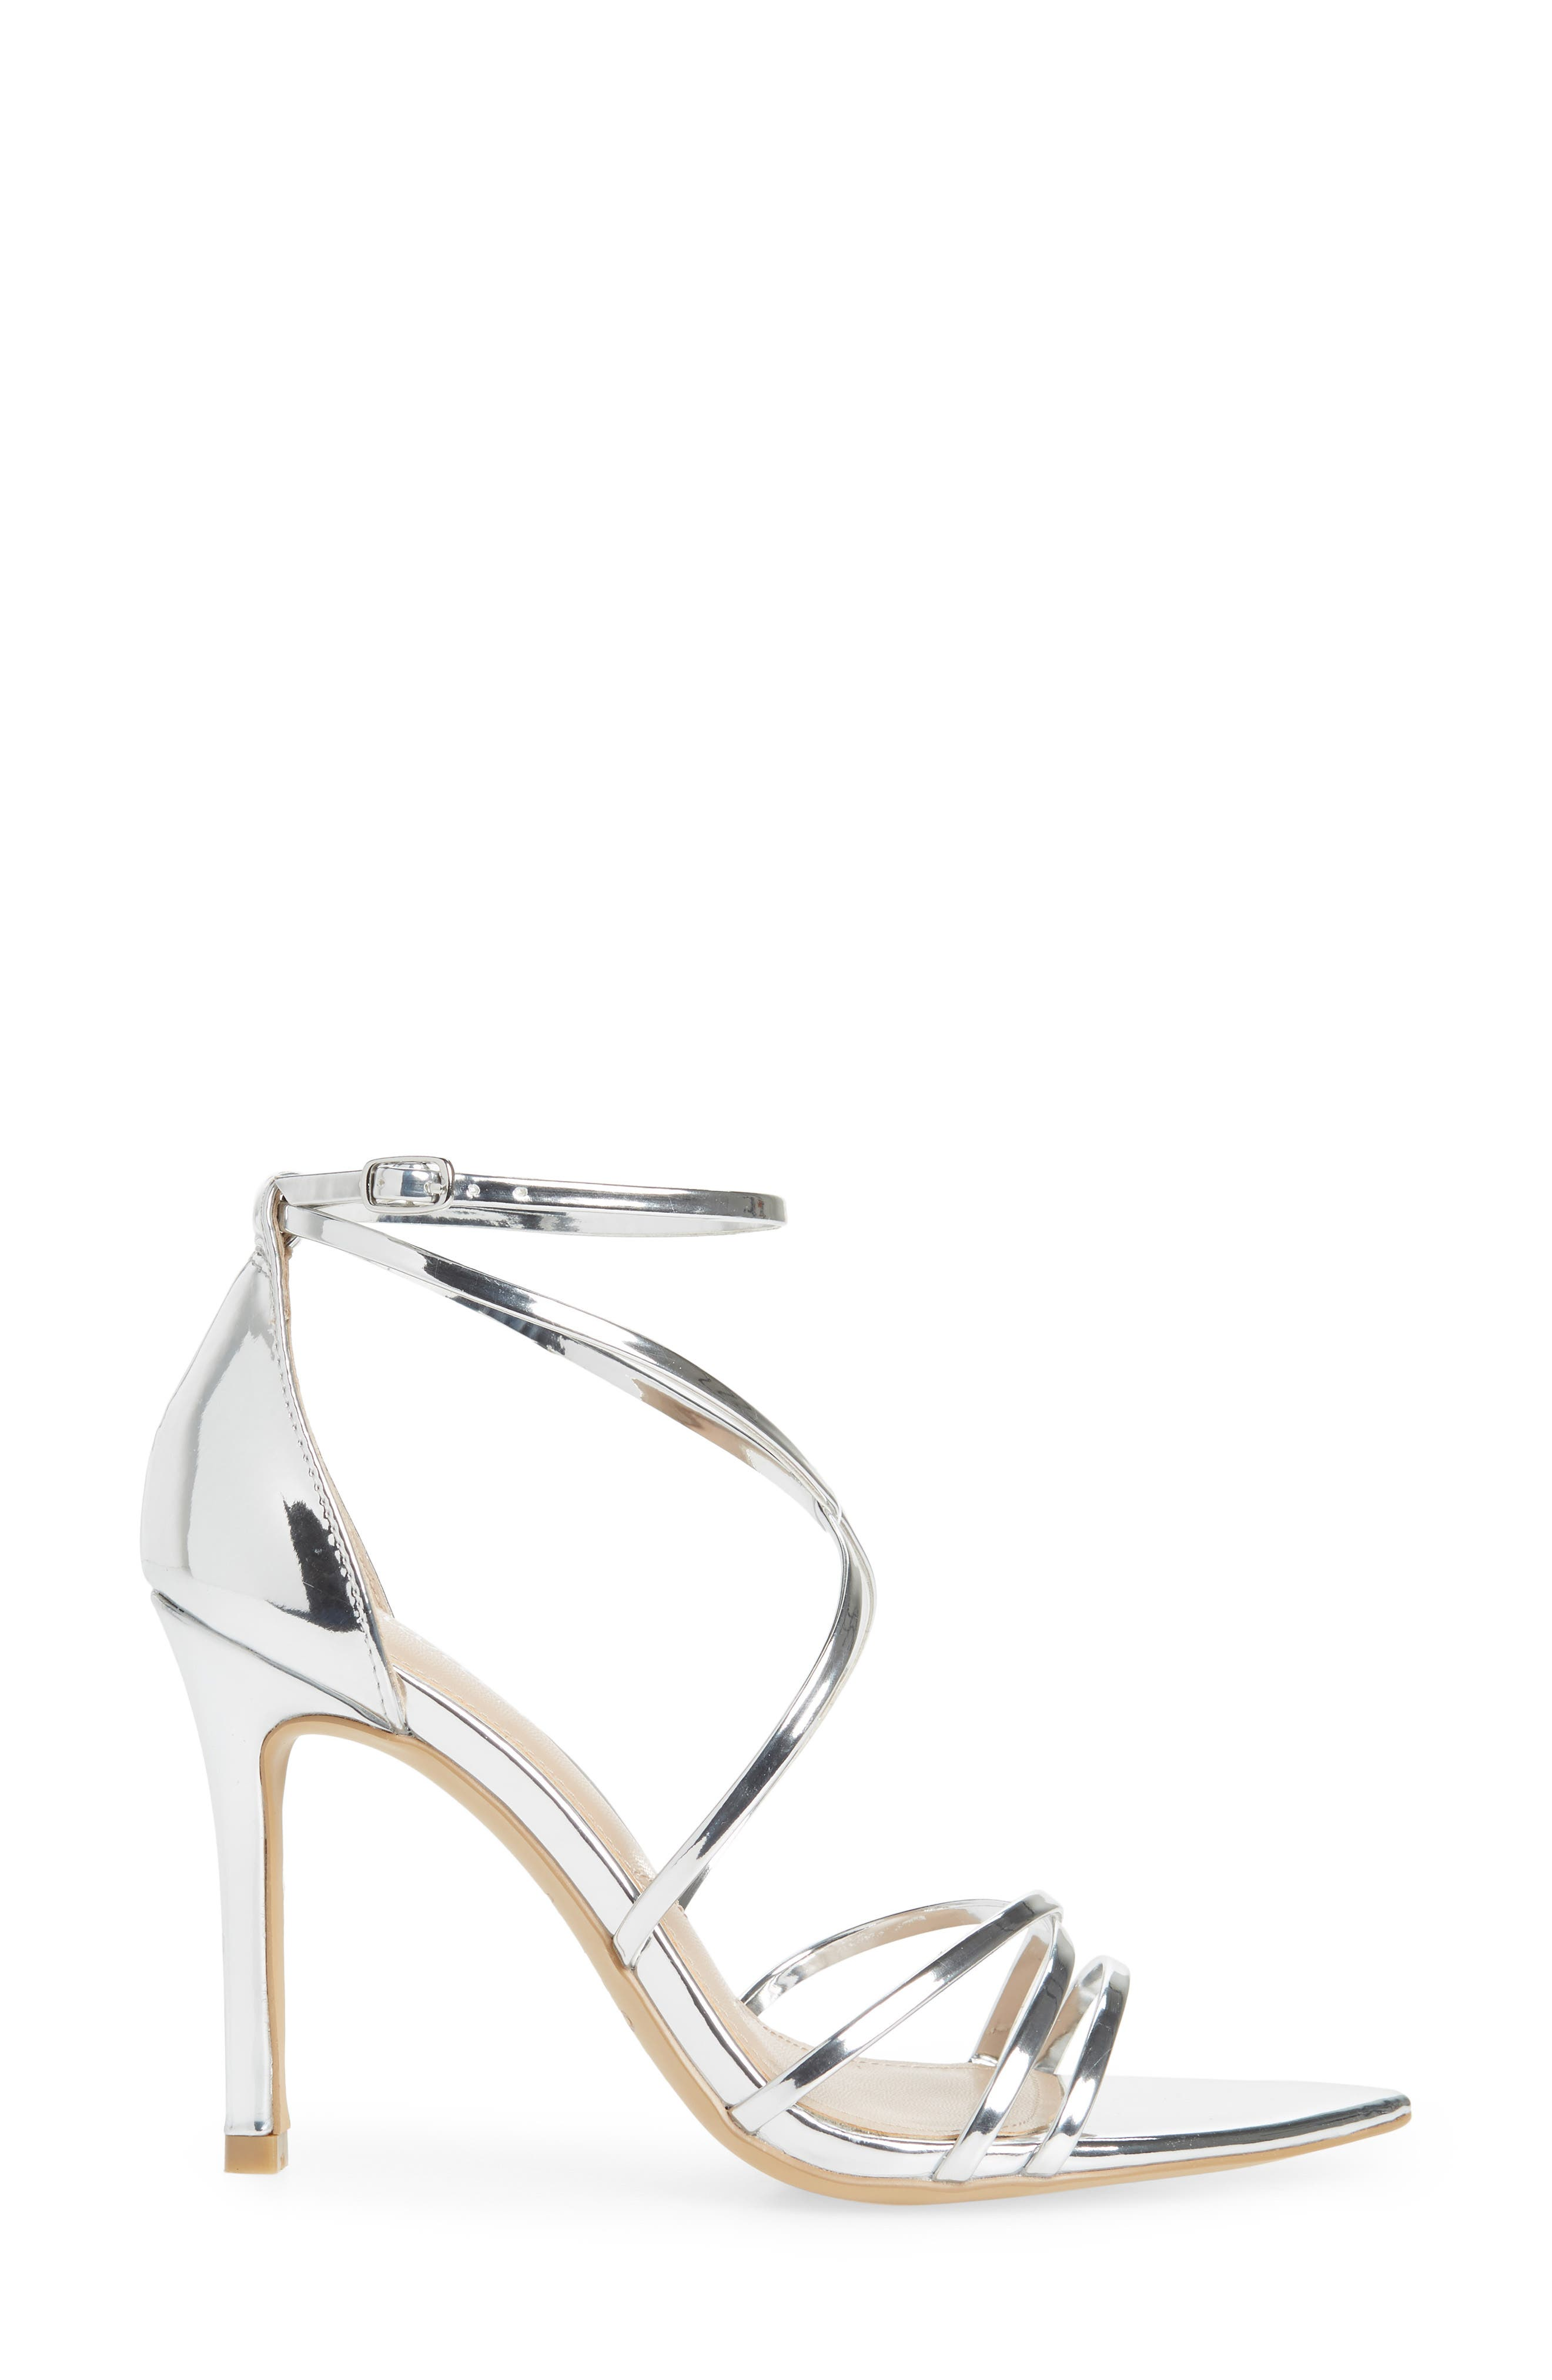 CHARLES BY CHARLES DAVID, Trickster Strappy Sandal, Alternate thumbnail 3, color, SILVER FAUX LEATHER